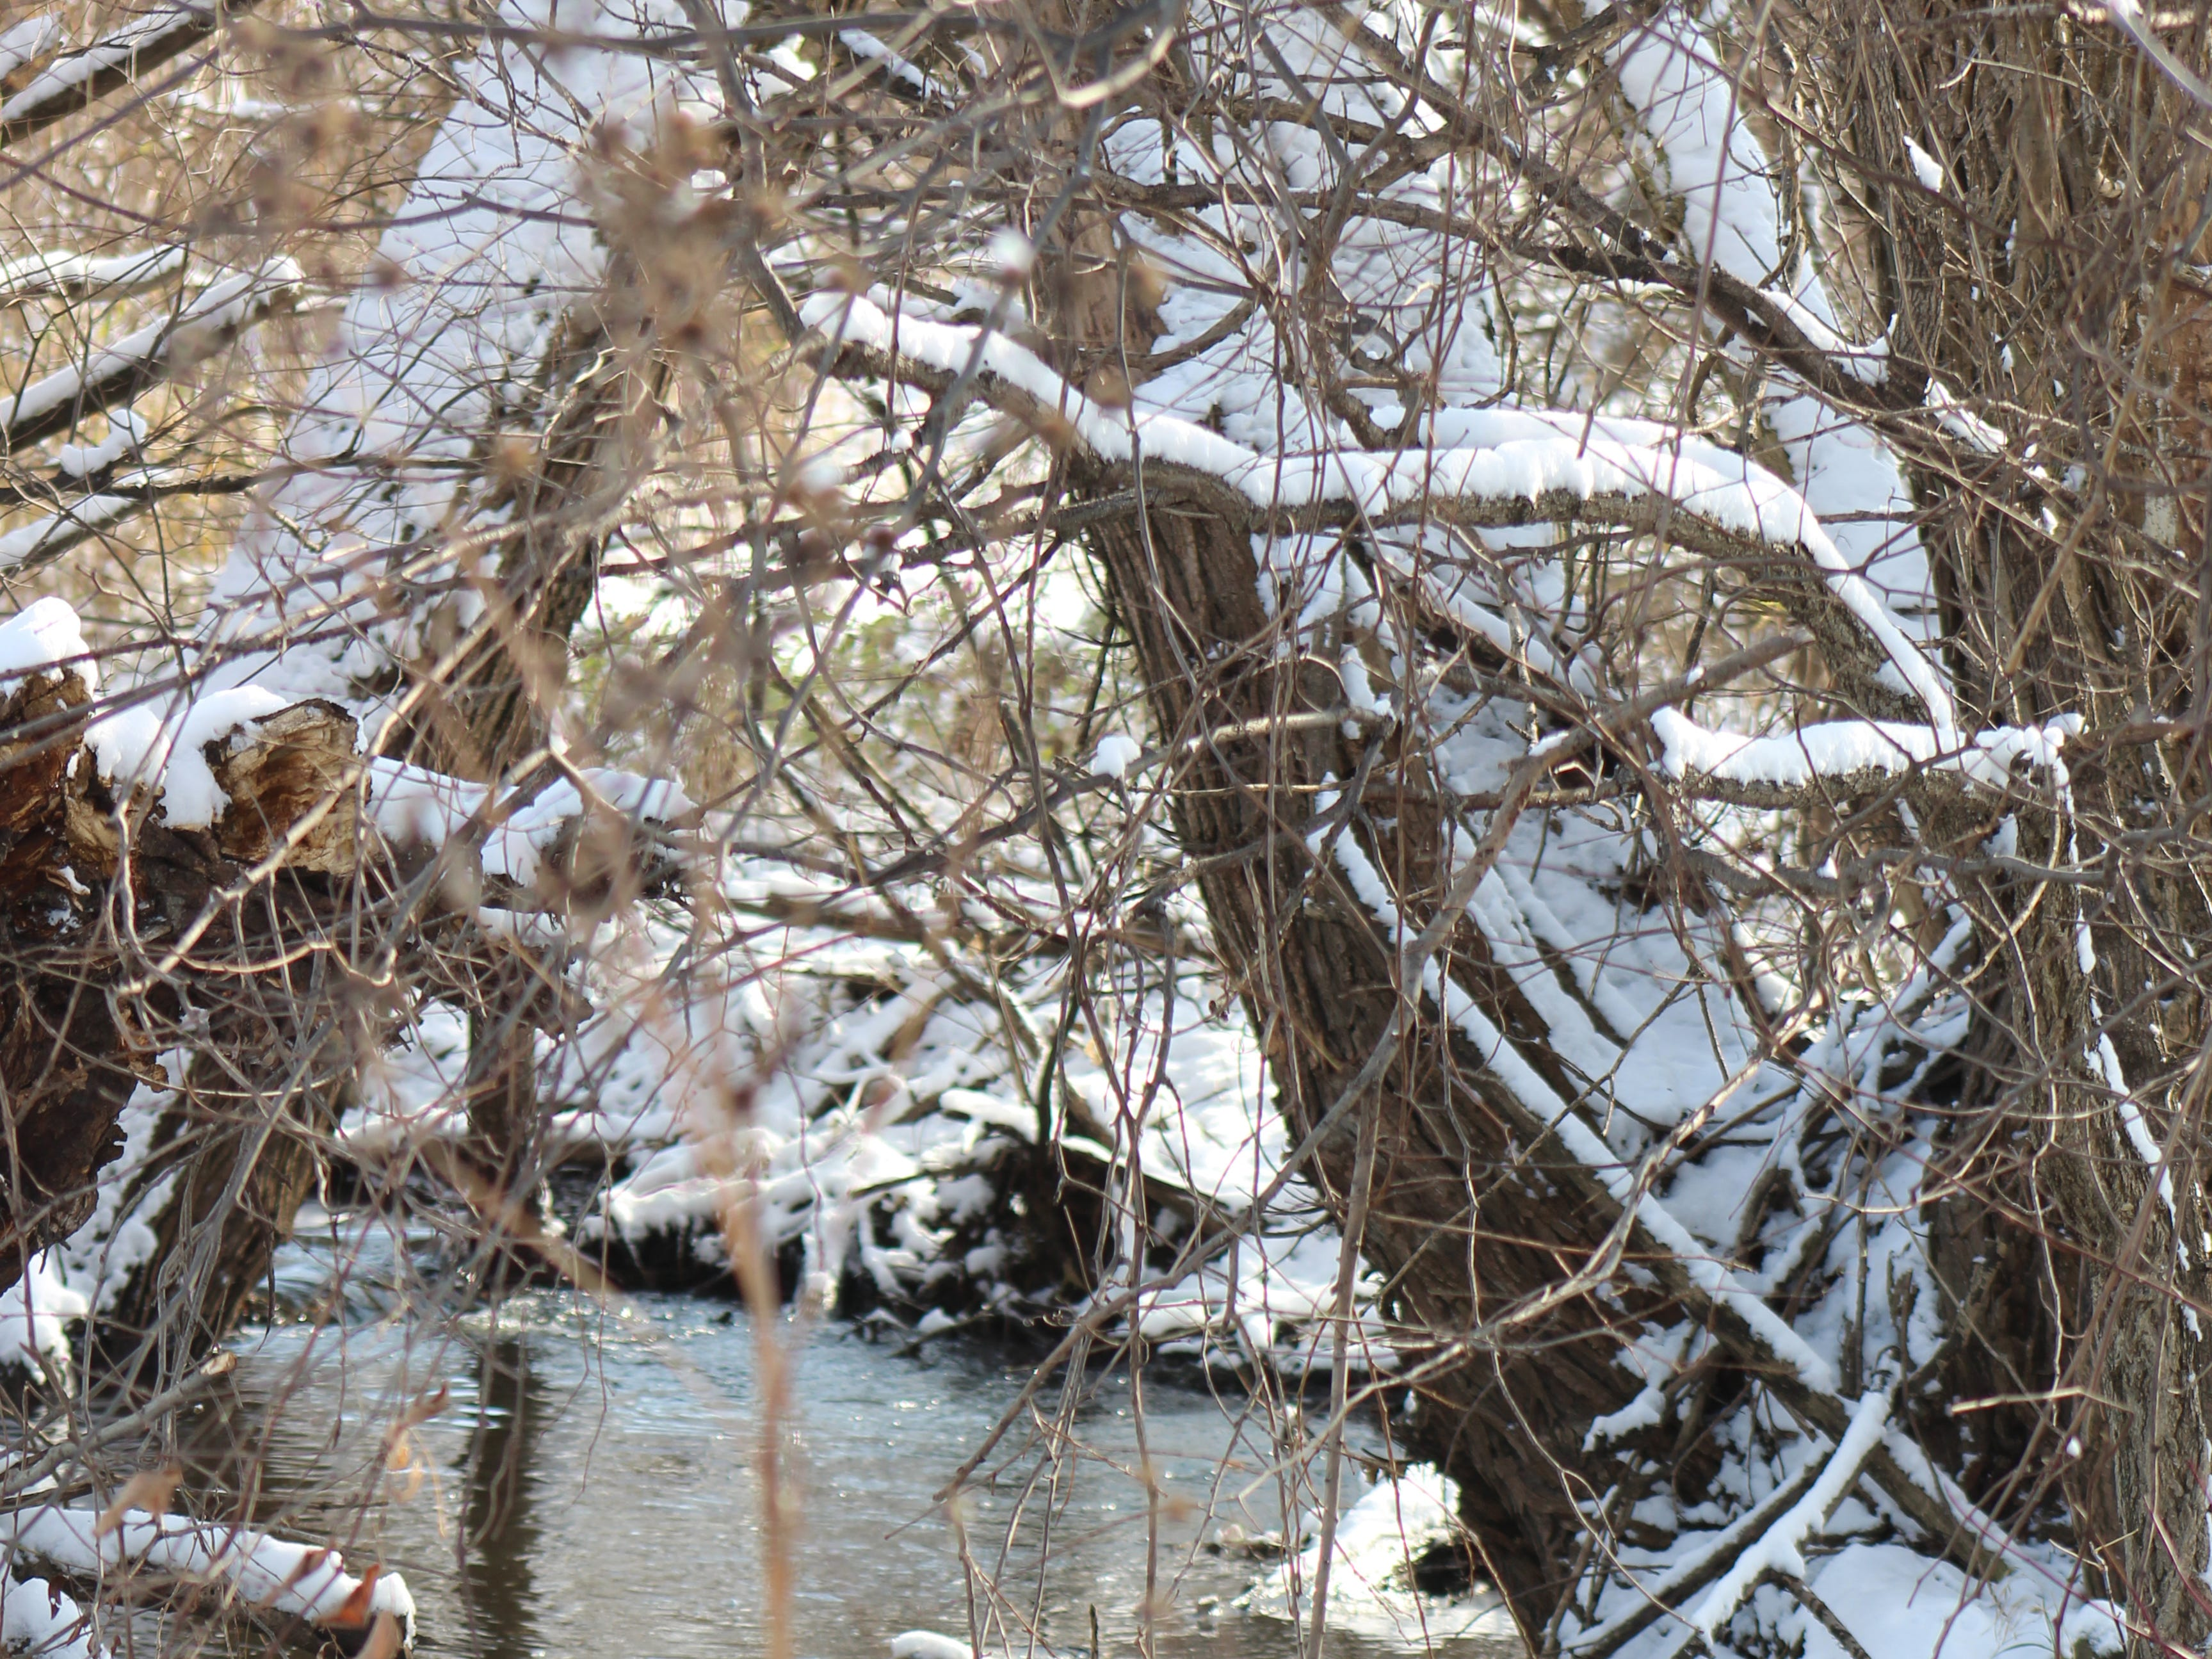 A small tributary stream winds through the landscape dusted with new fallen snow.